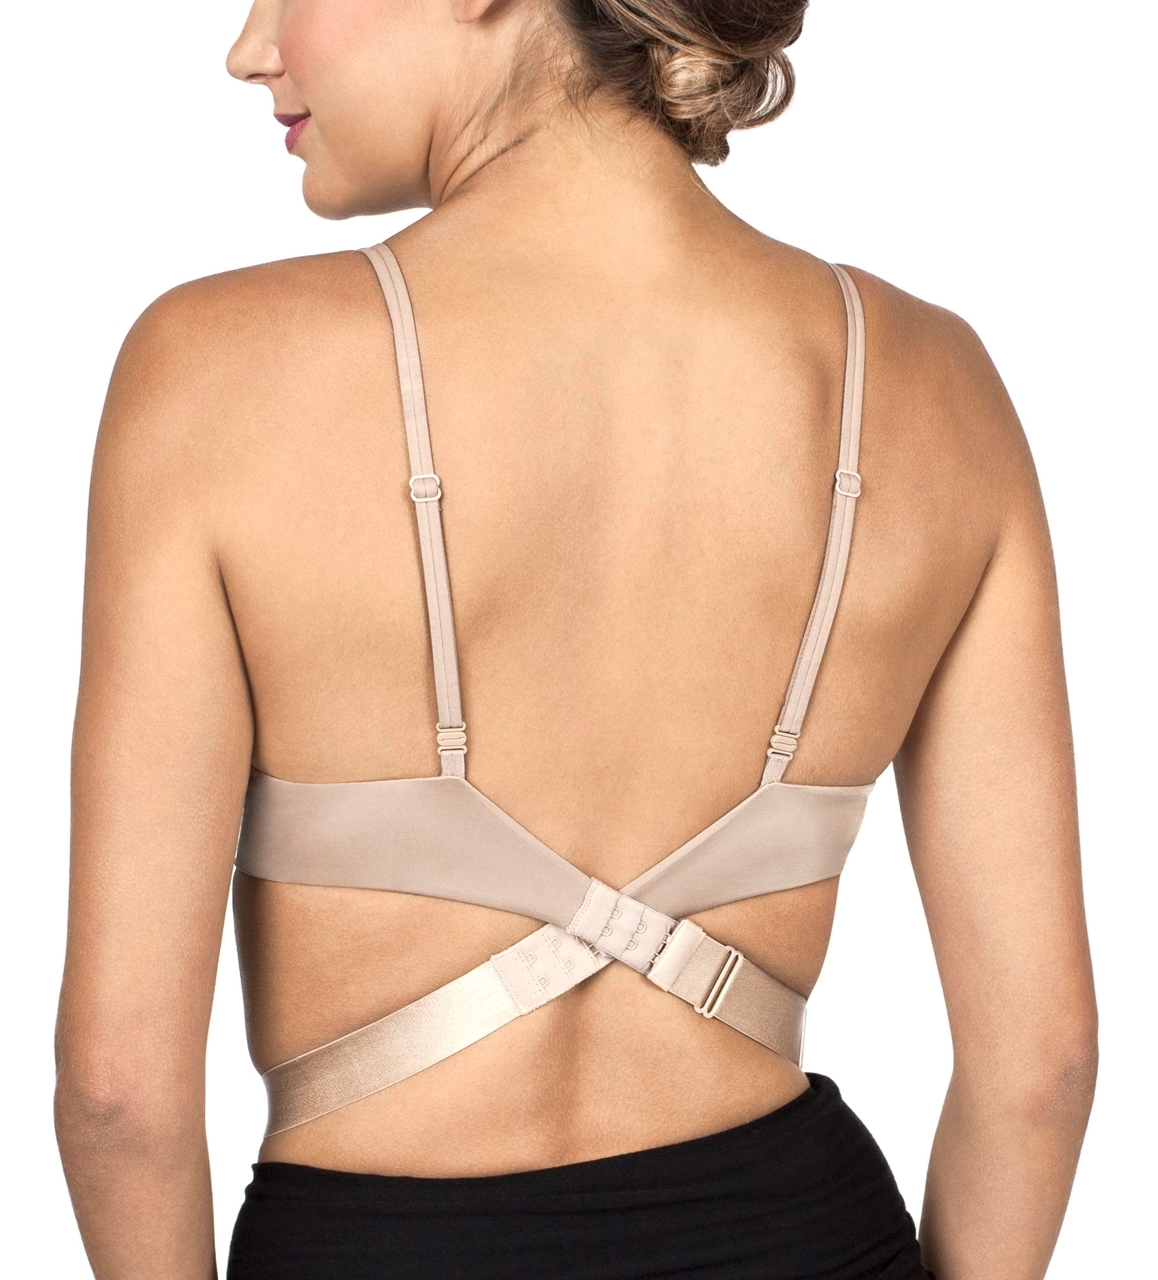 4bd9d90148 ... Picture of Fashion Forms  4105 Backless Bra Straps ...